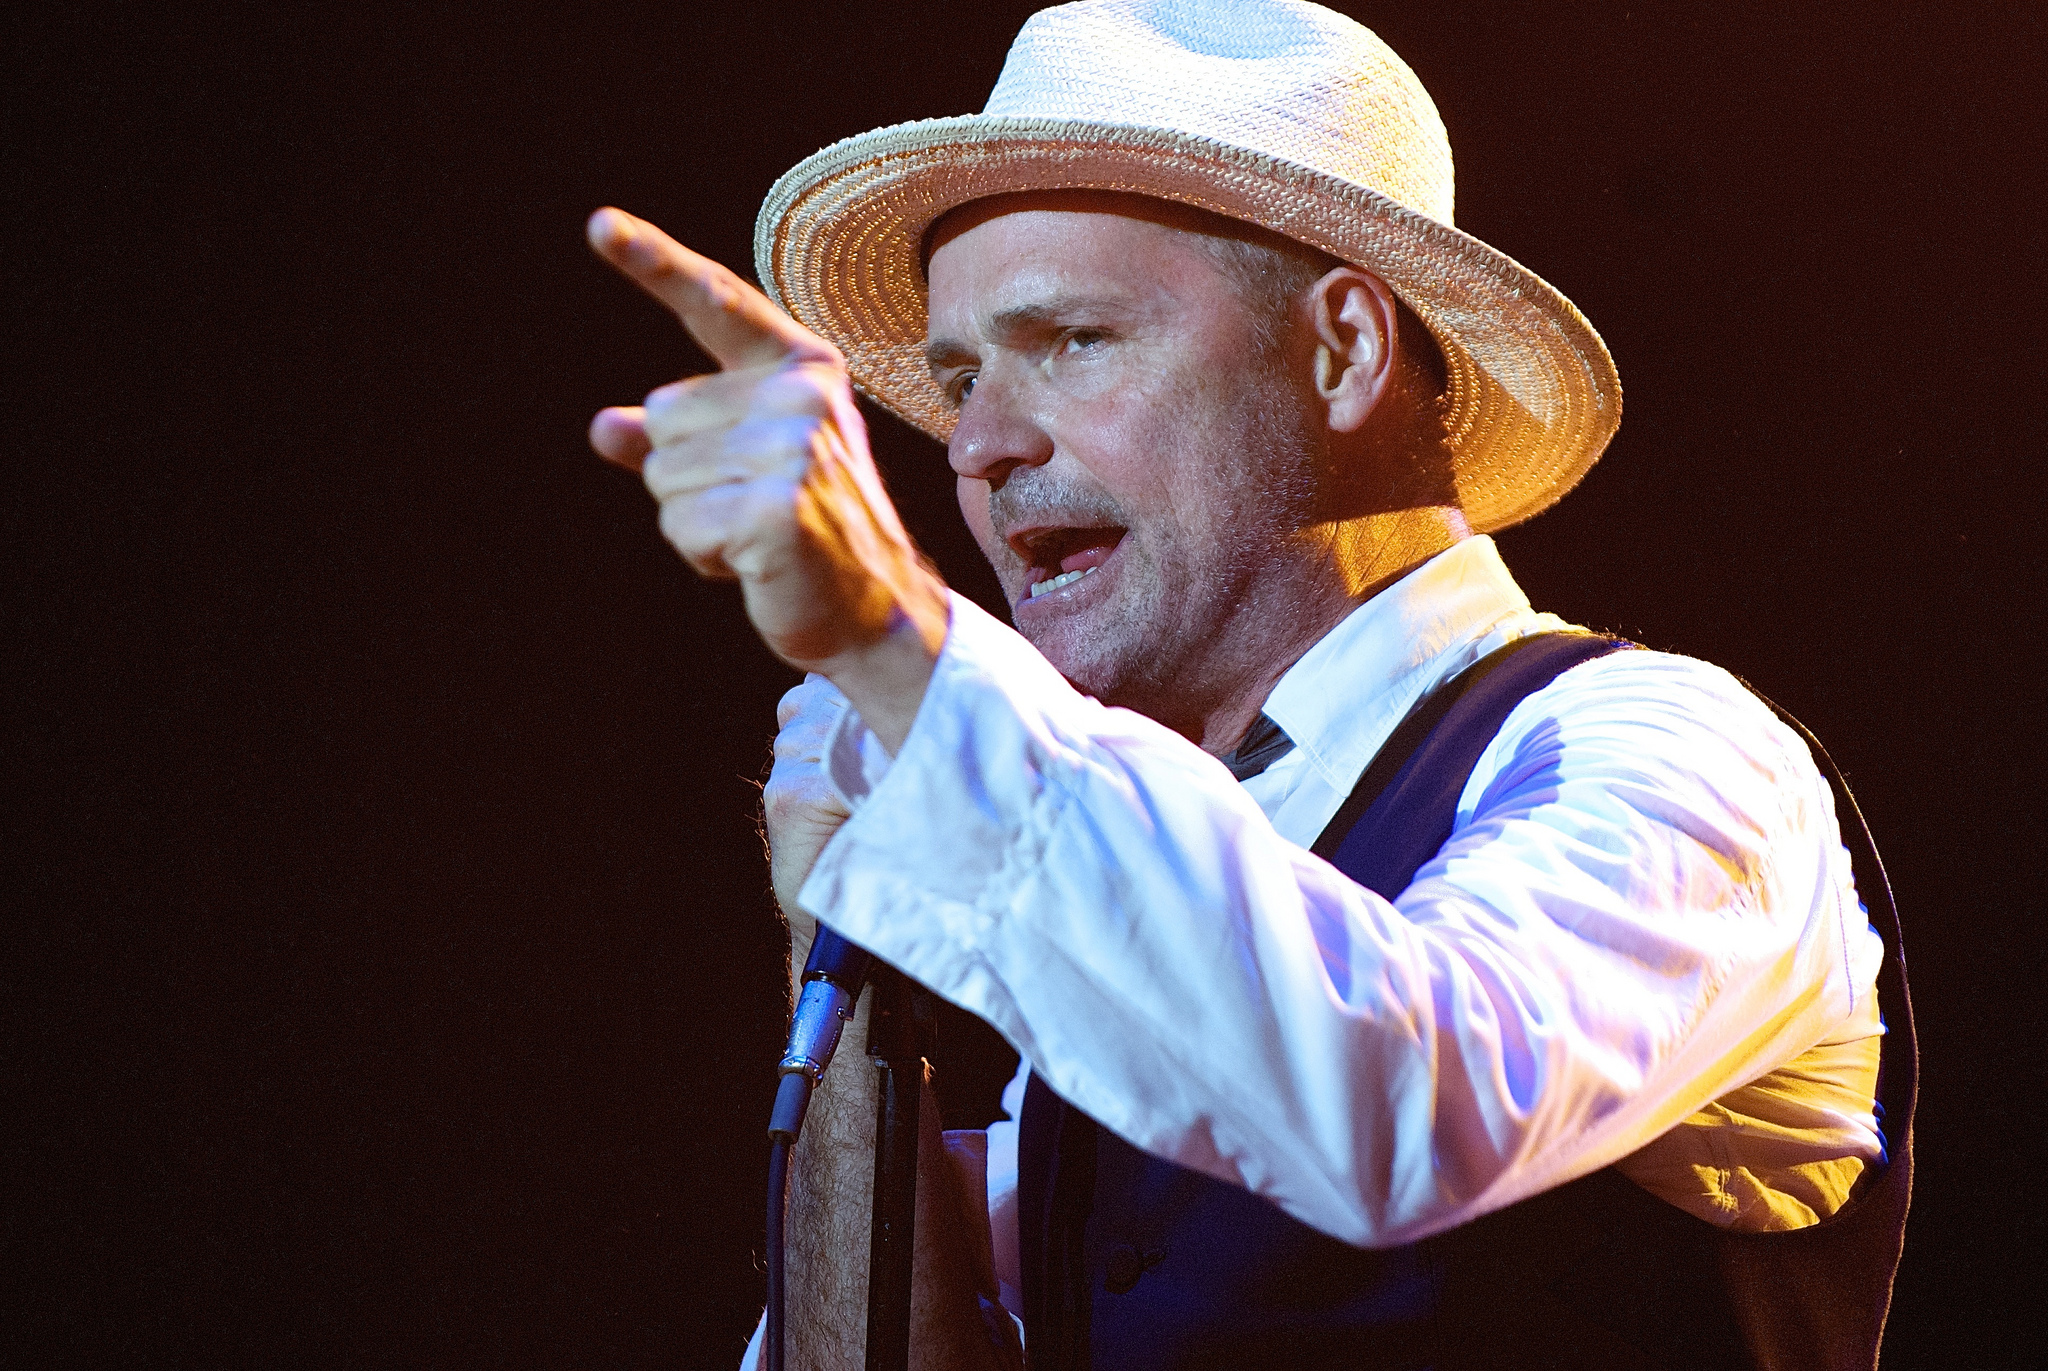 Gord Downey Tribute and fund raising concert